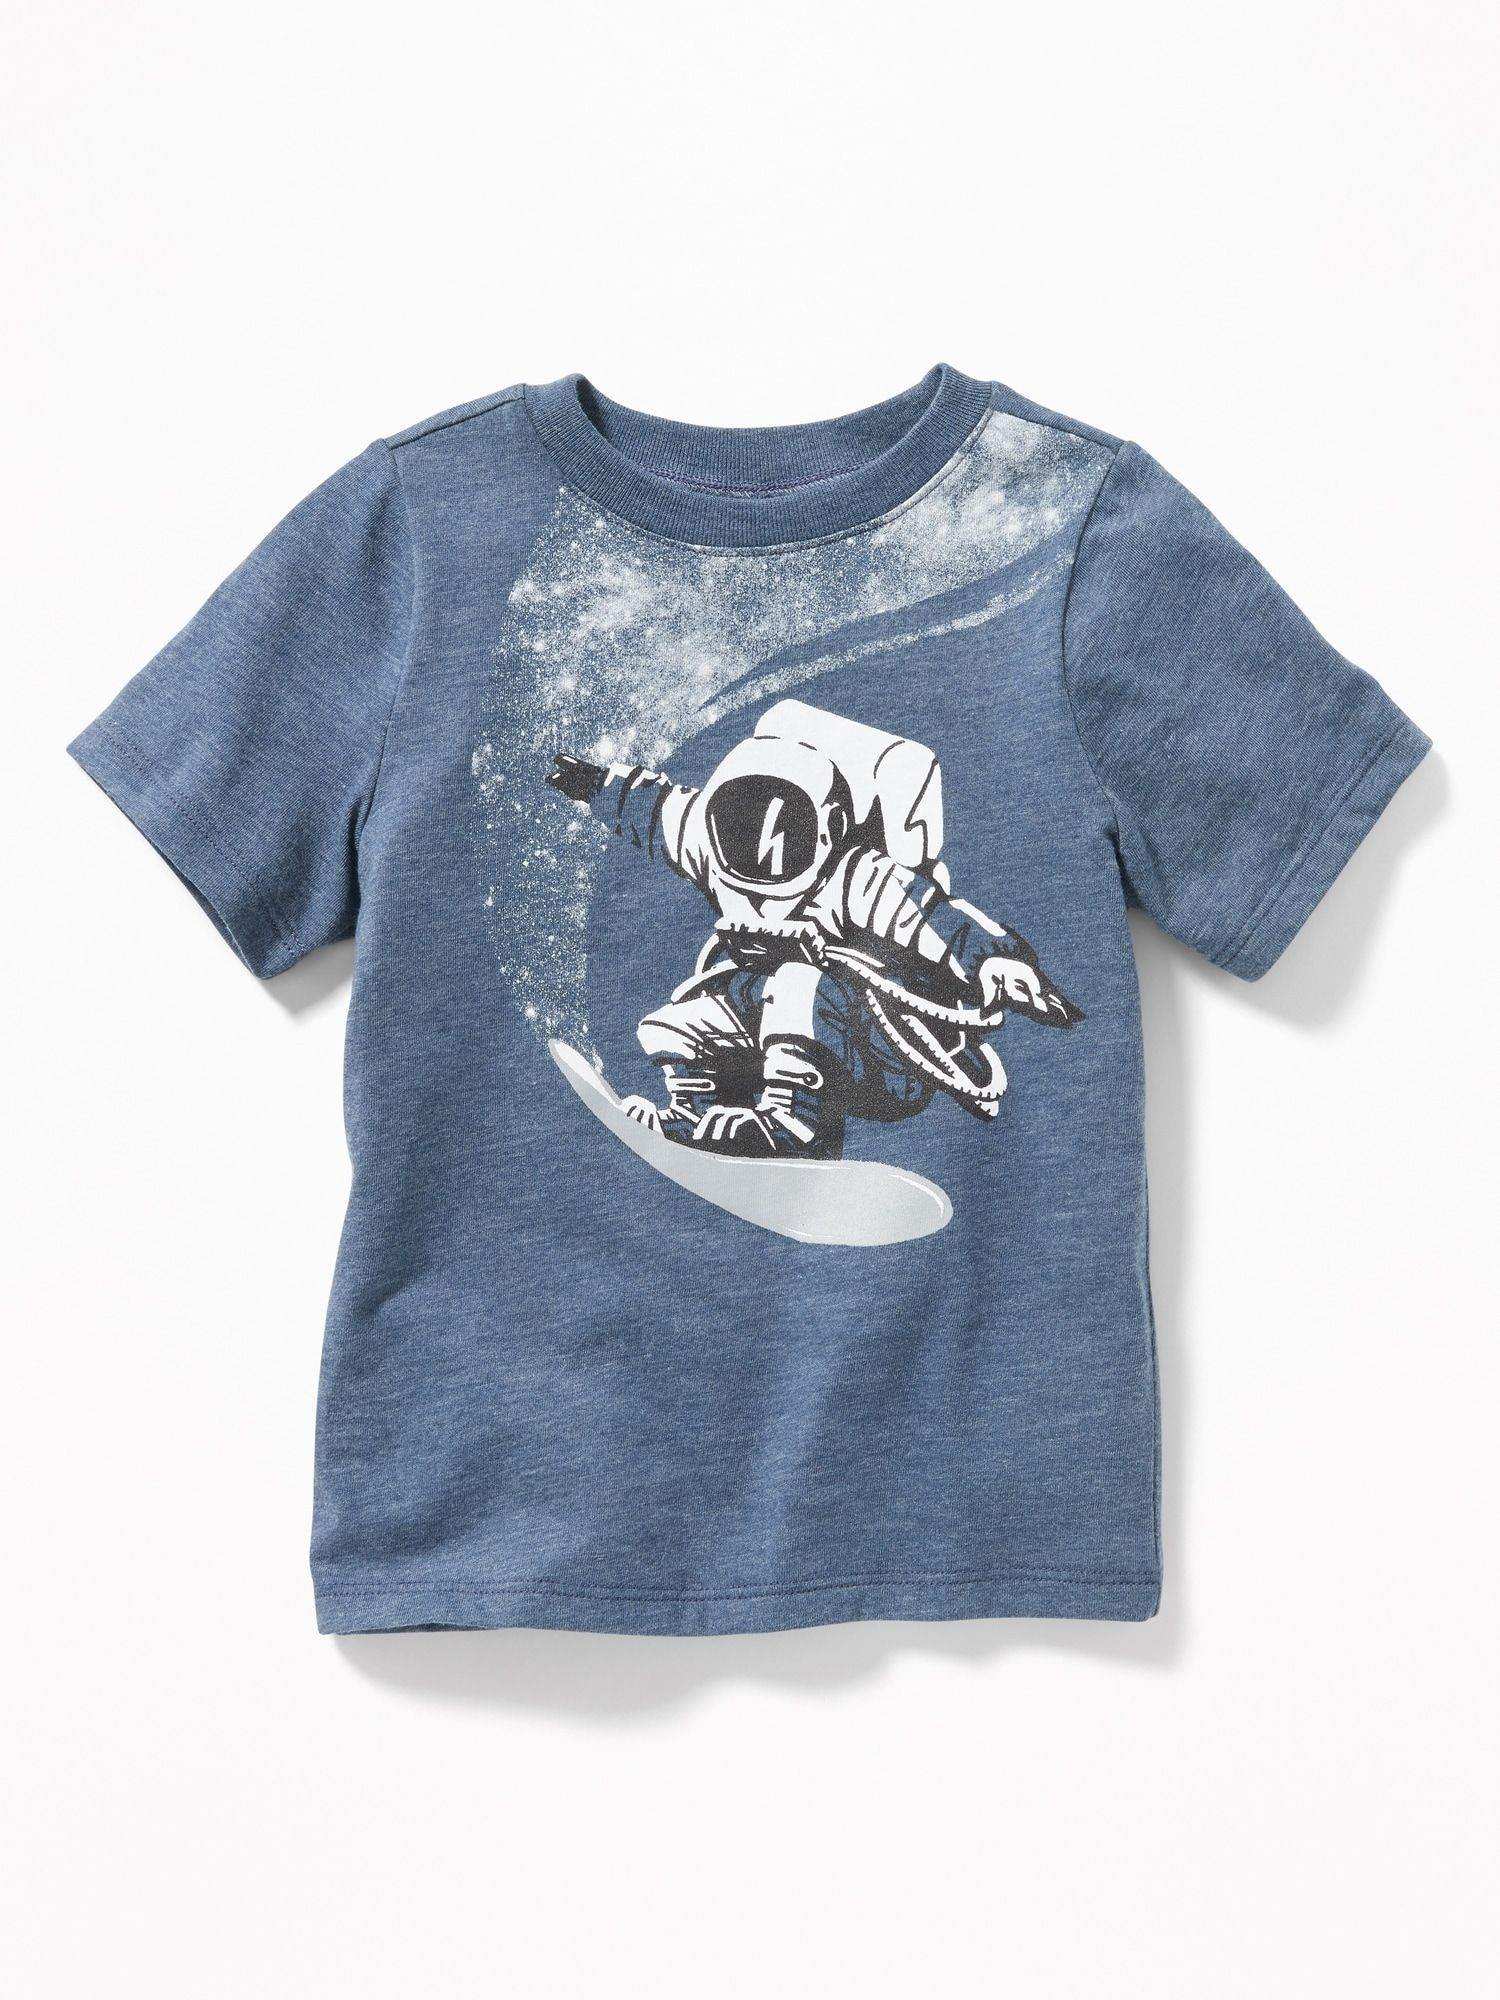 94c1488e01807 Graphic Crew-Neck Tee for Toddler Boys in 2019